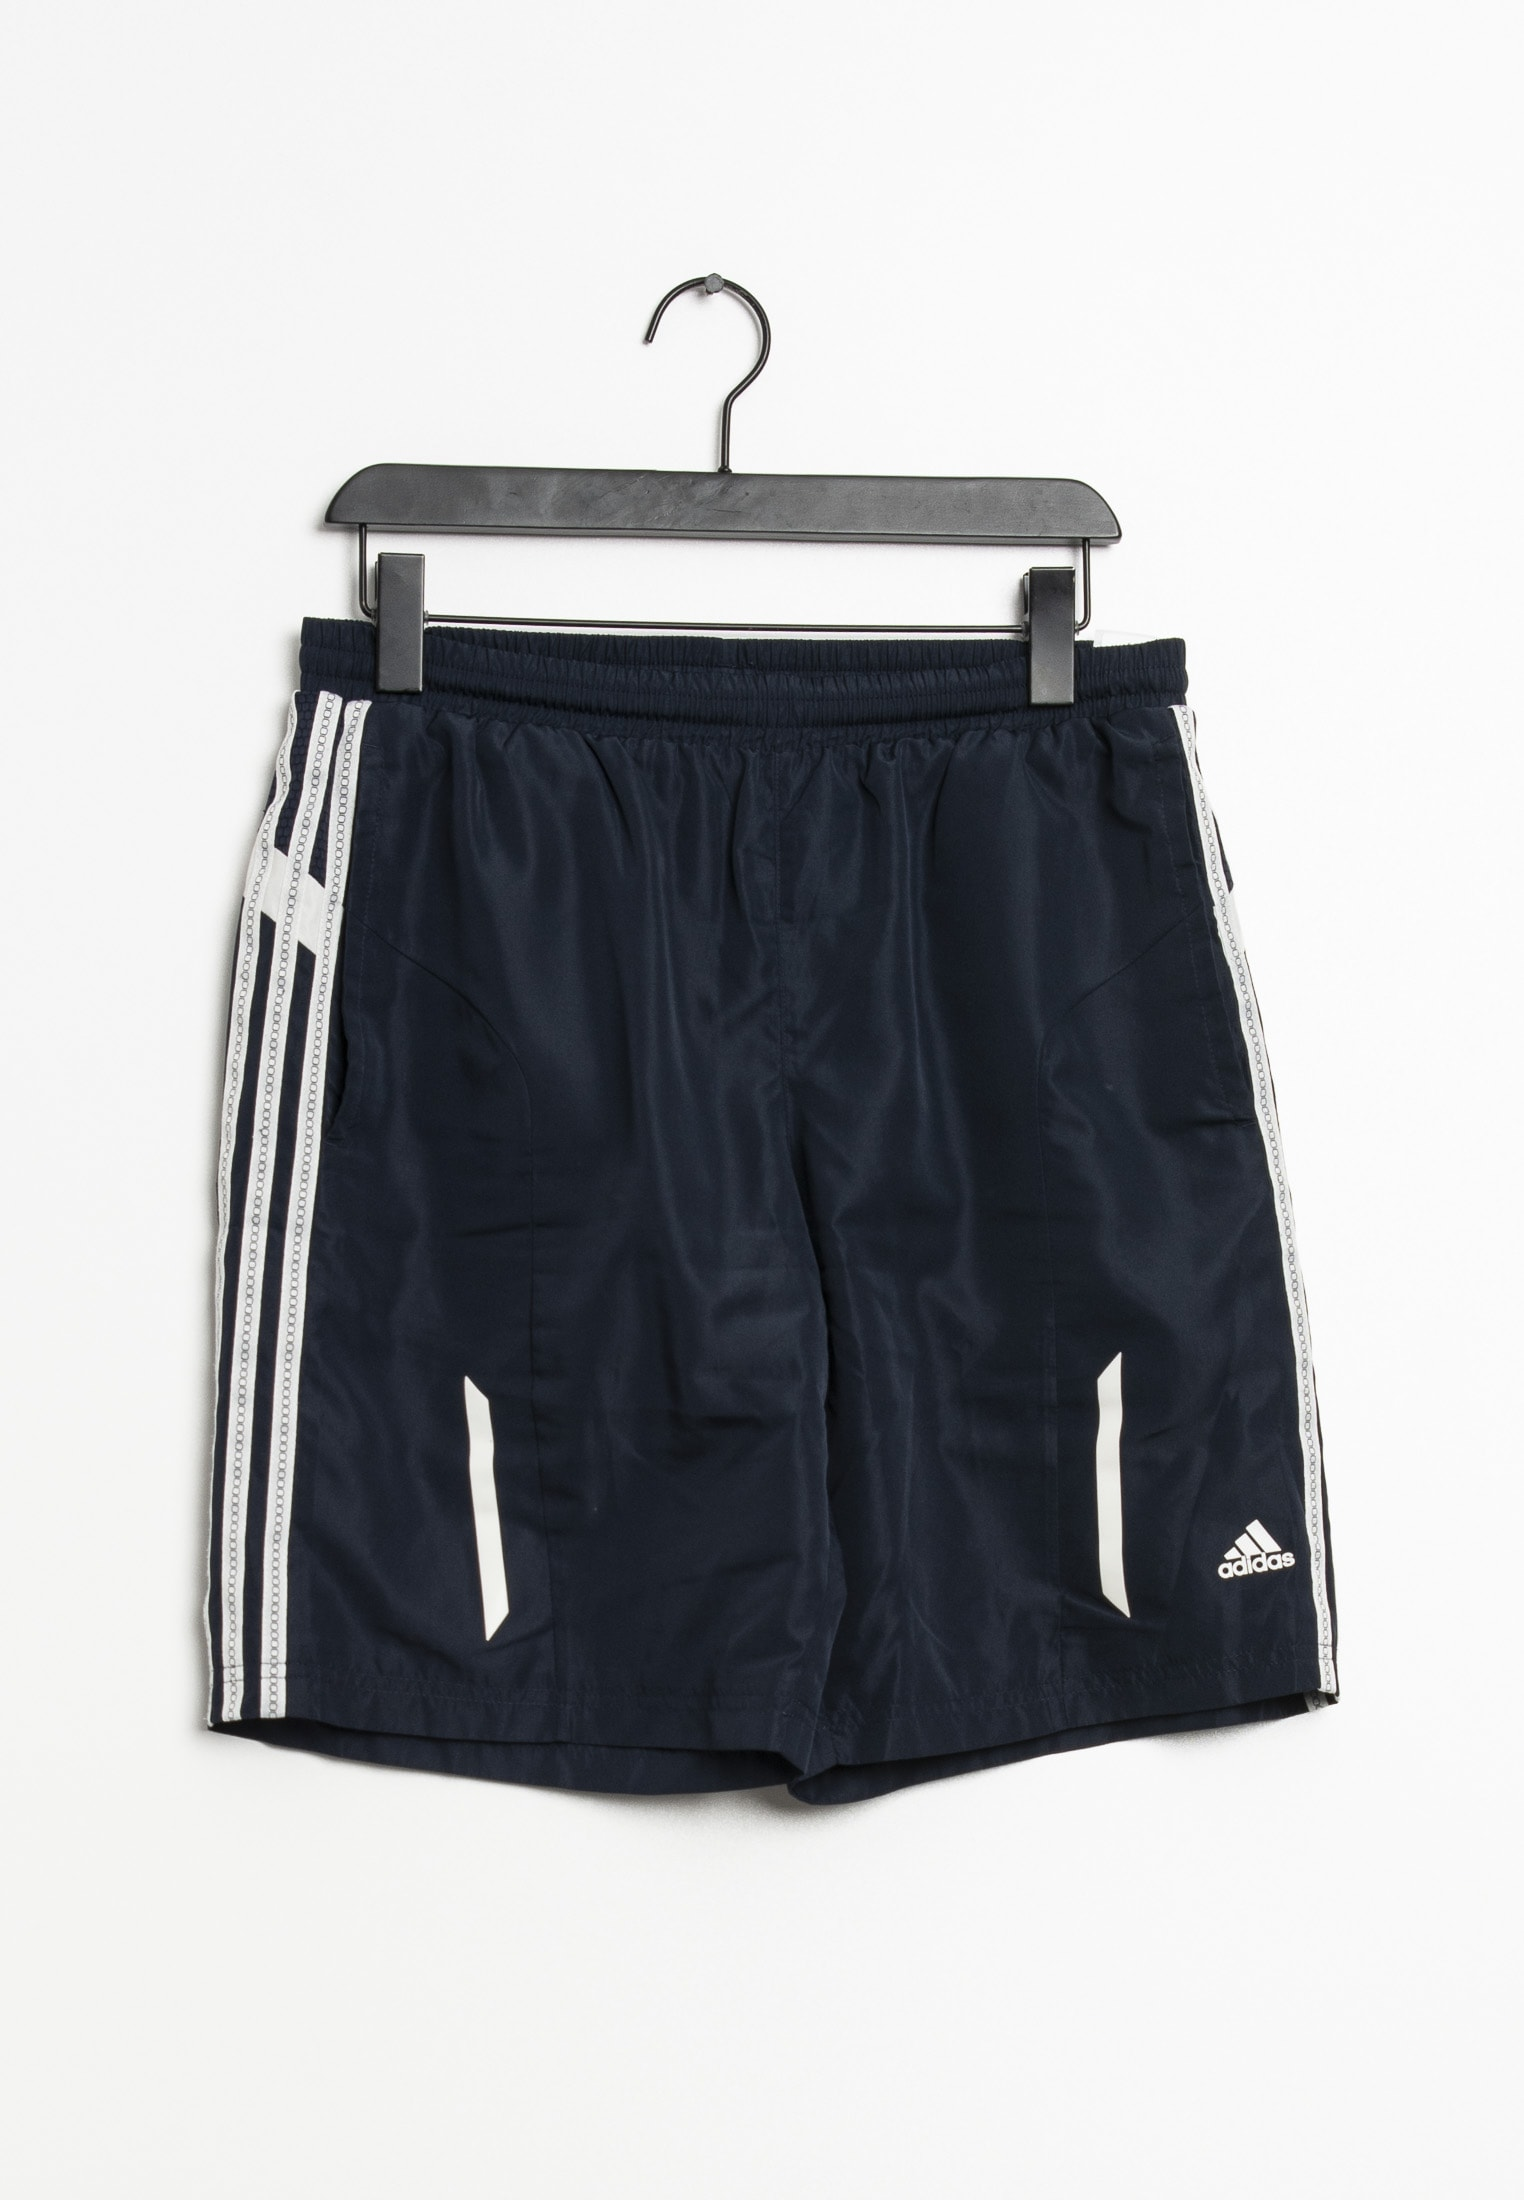 adidas Originals Shorts Blau Gr.M